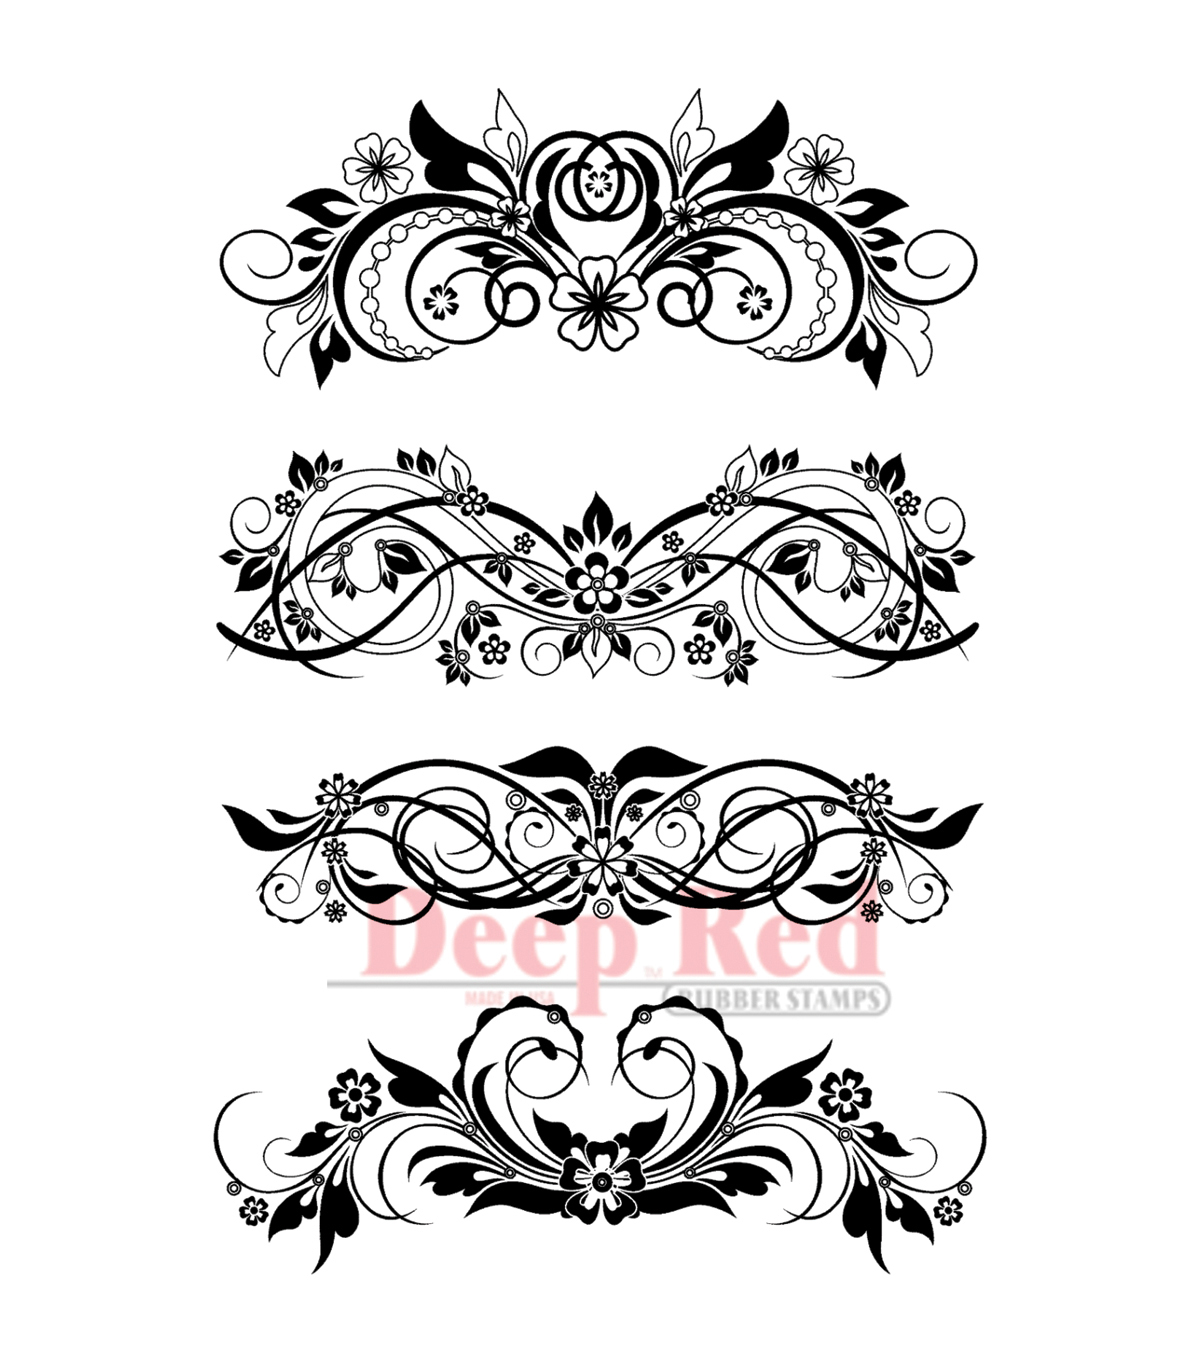 Deep Red Stamps Cling Stamp Set Vector Flourishes